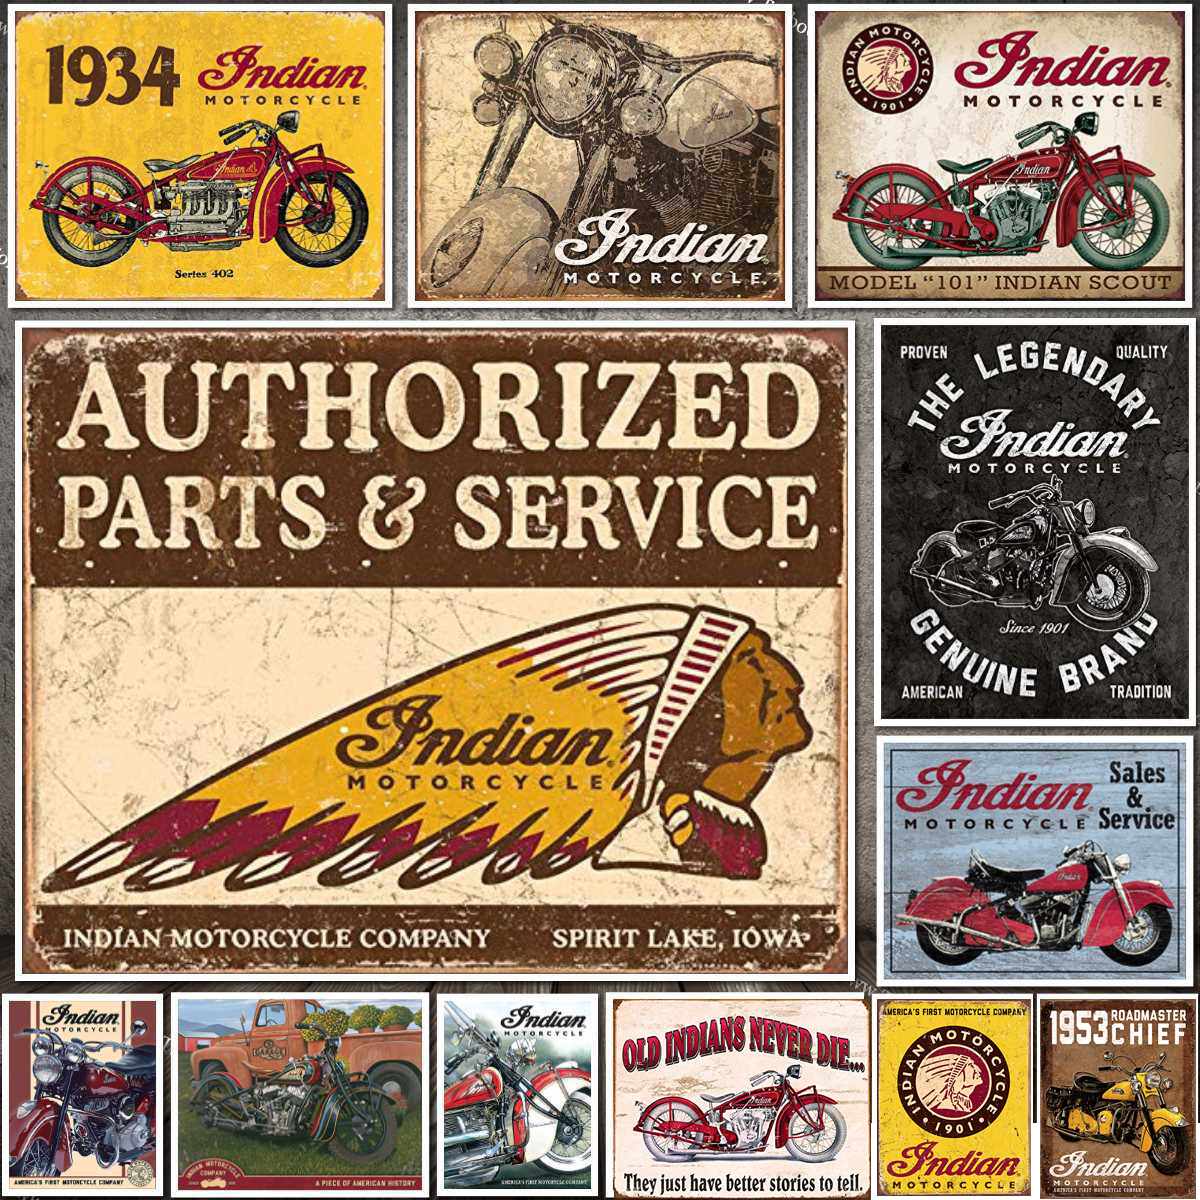 Motorcycle Shabby Vintage Metal Tin Sign Art Craft Iron Painting Pub Garage Cafe Restaurant Decor Plaques Metal Plates Poster